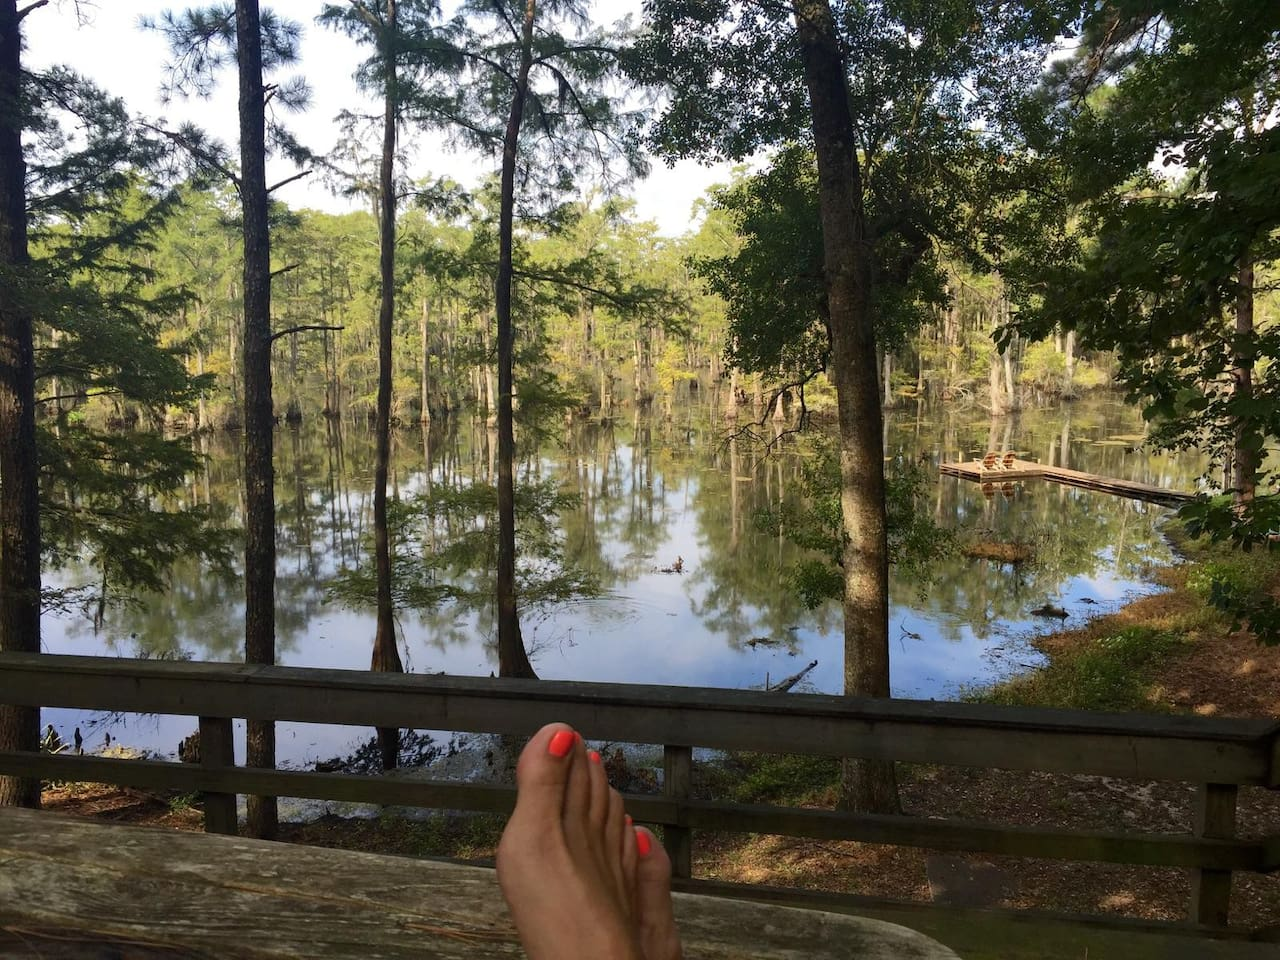 Pine trees and water galore one block away; park, jogging trail, water park, tennis, soccer field all in walking distance